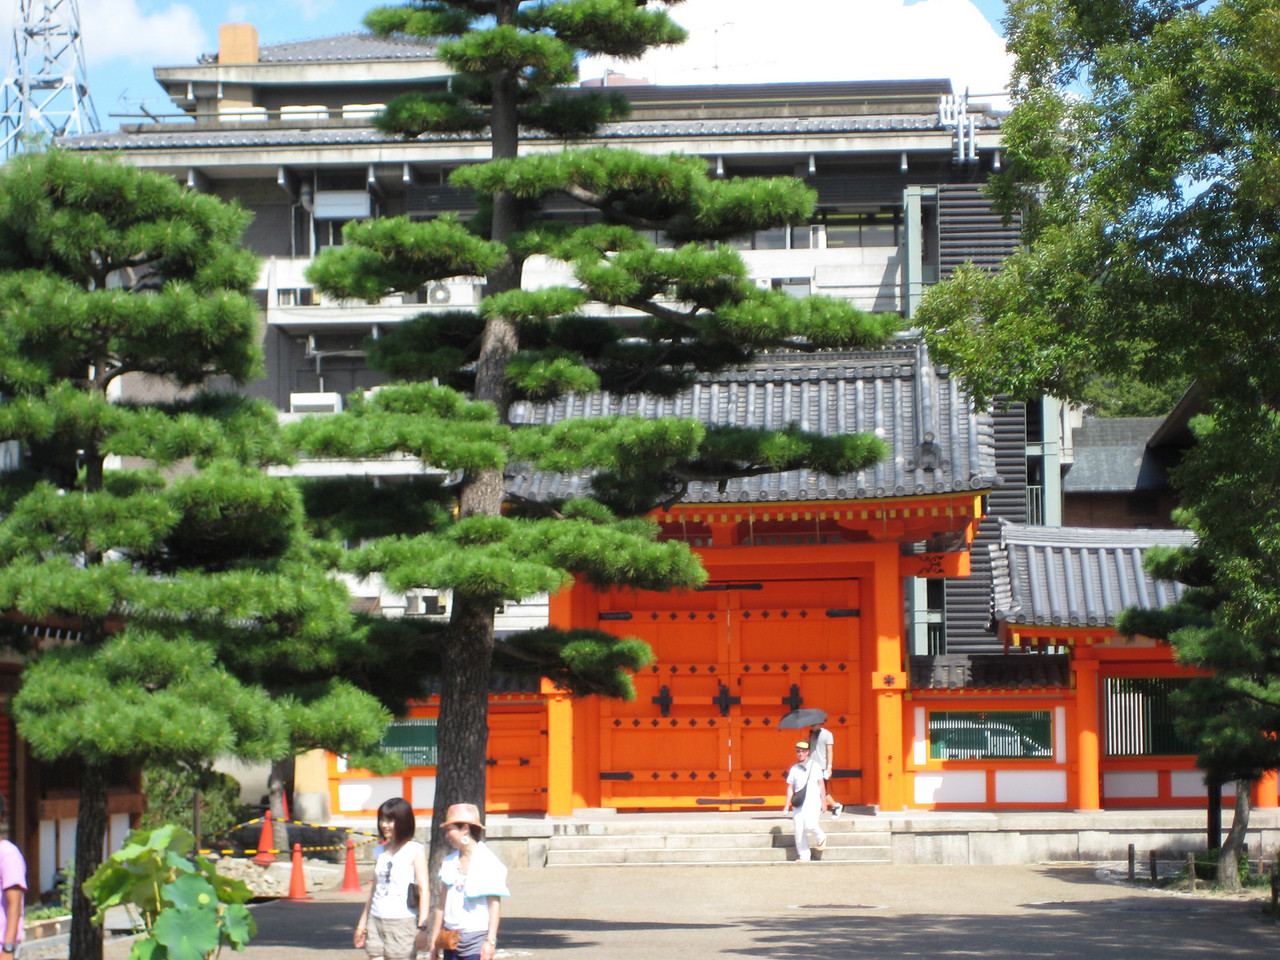 The Kamakura-style east gate of the temple is a recent addition